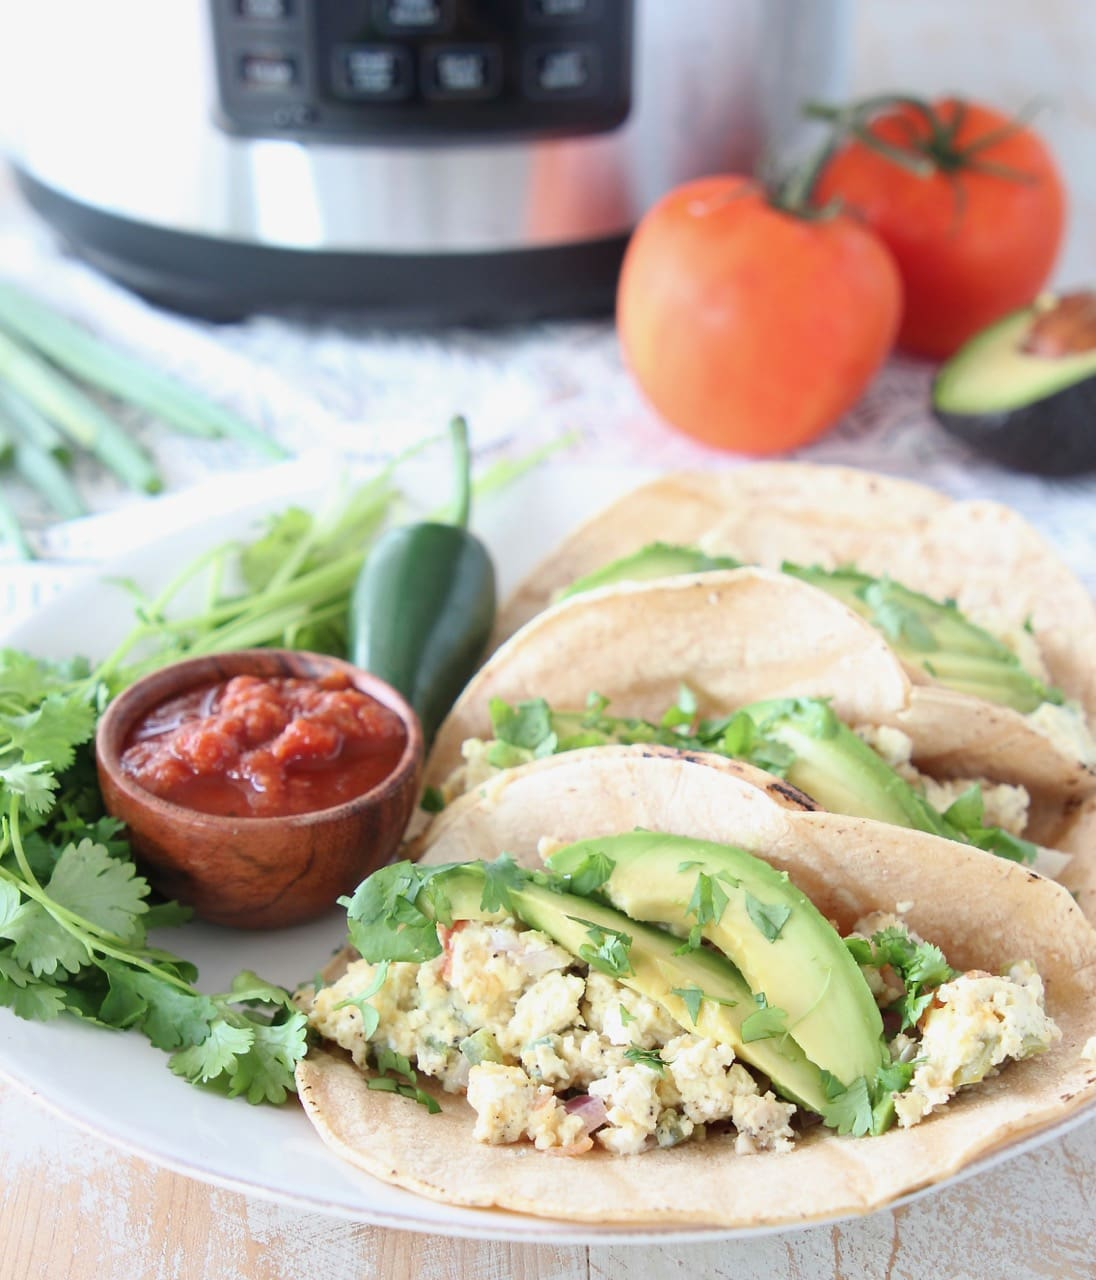 Pressure Cooker Breakfast Tacos with eggs, avocado, cilantro and salsa